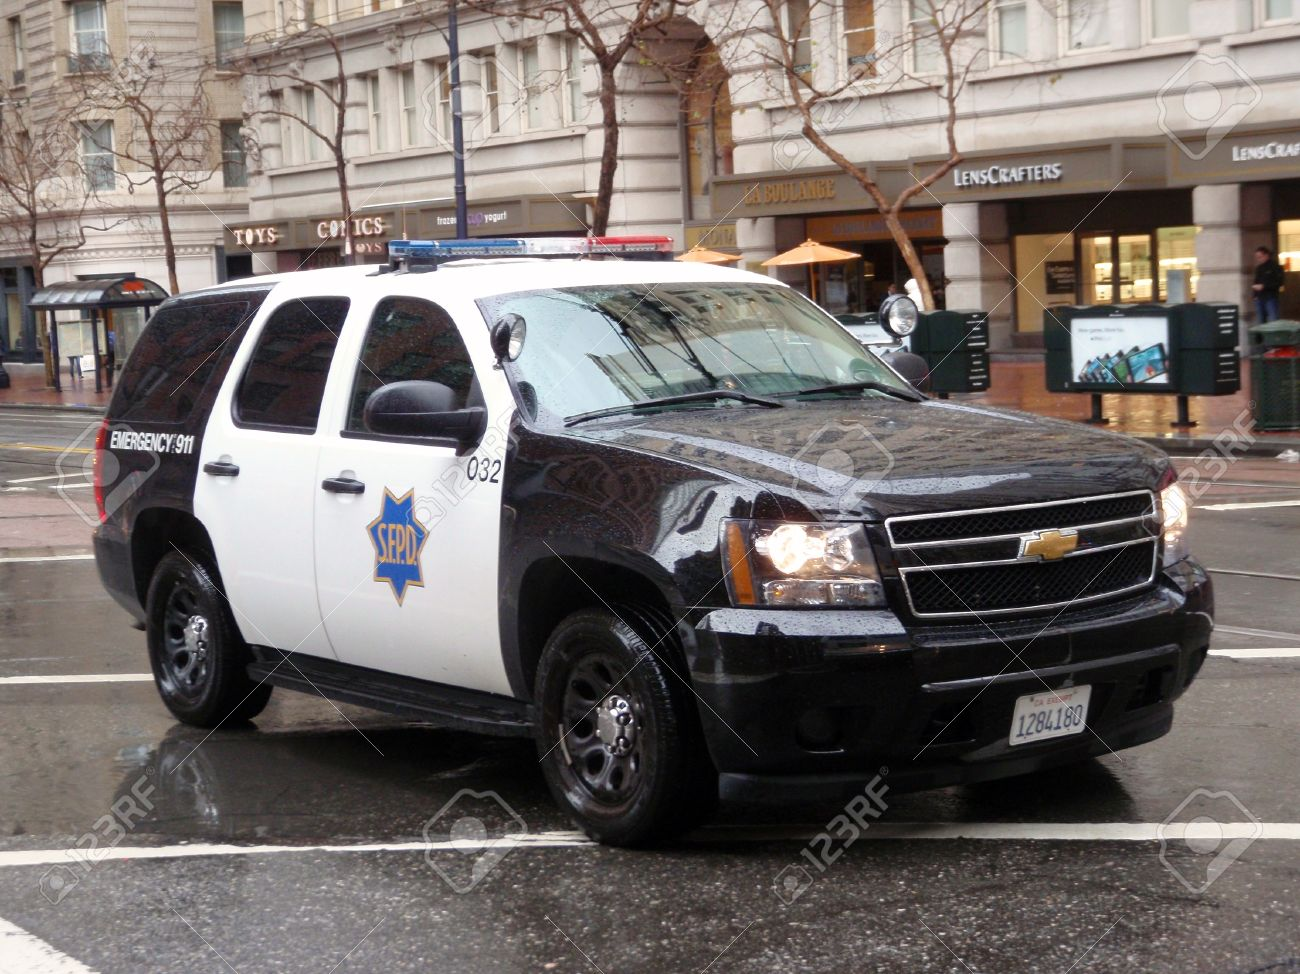 Ford Explorer SFPD cop vehicle rolls down market street during